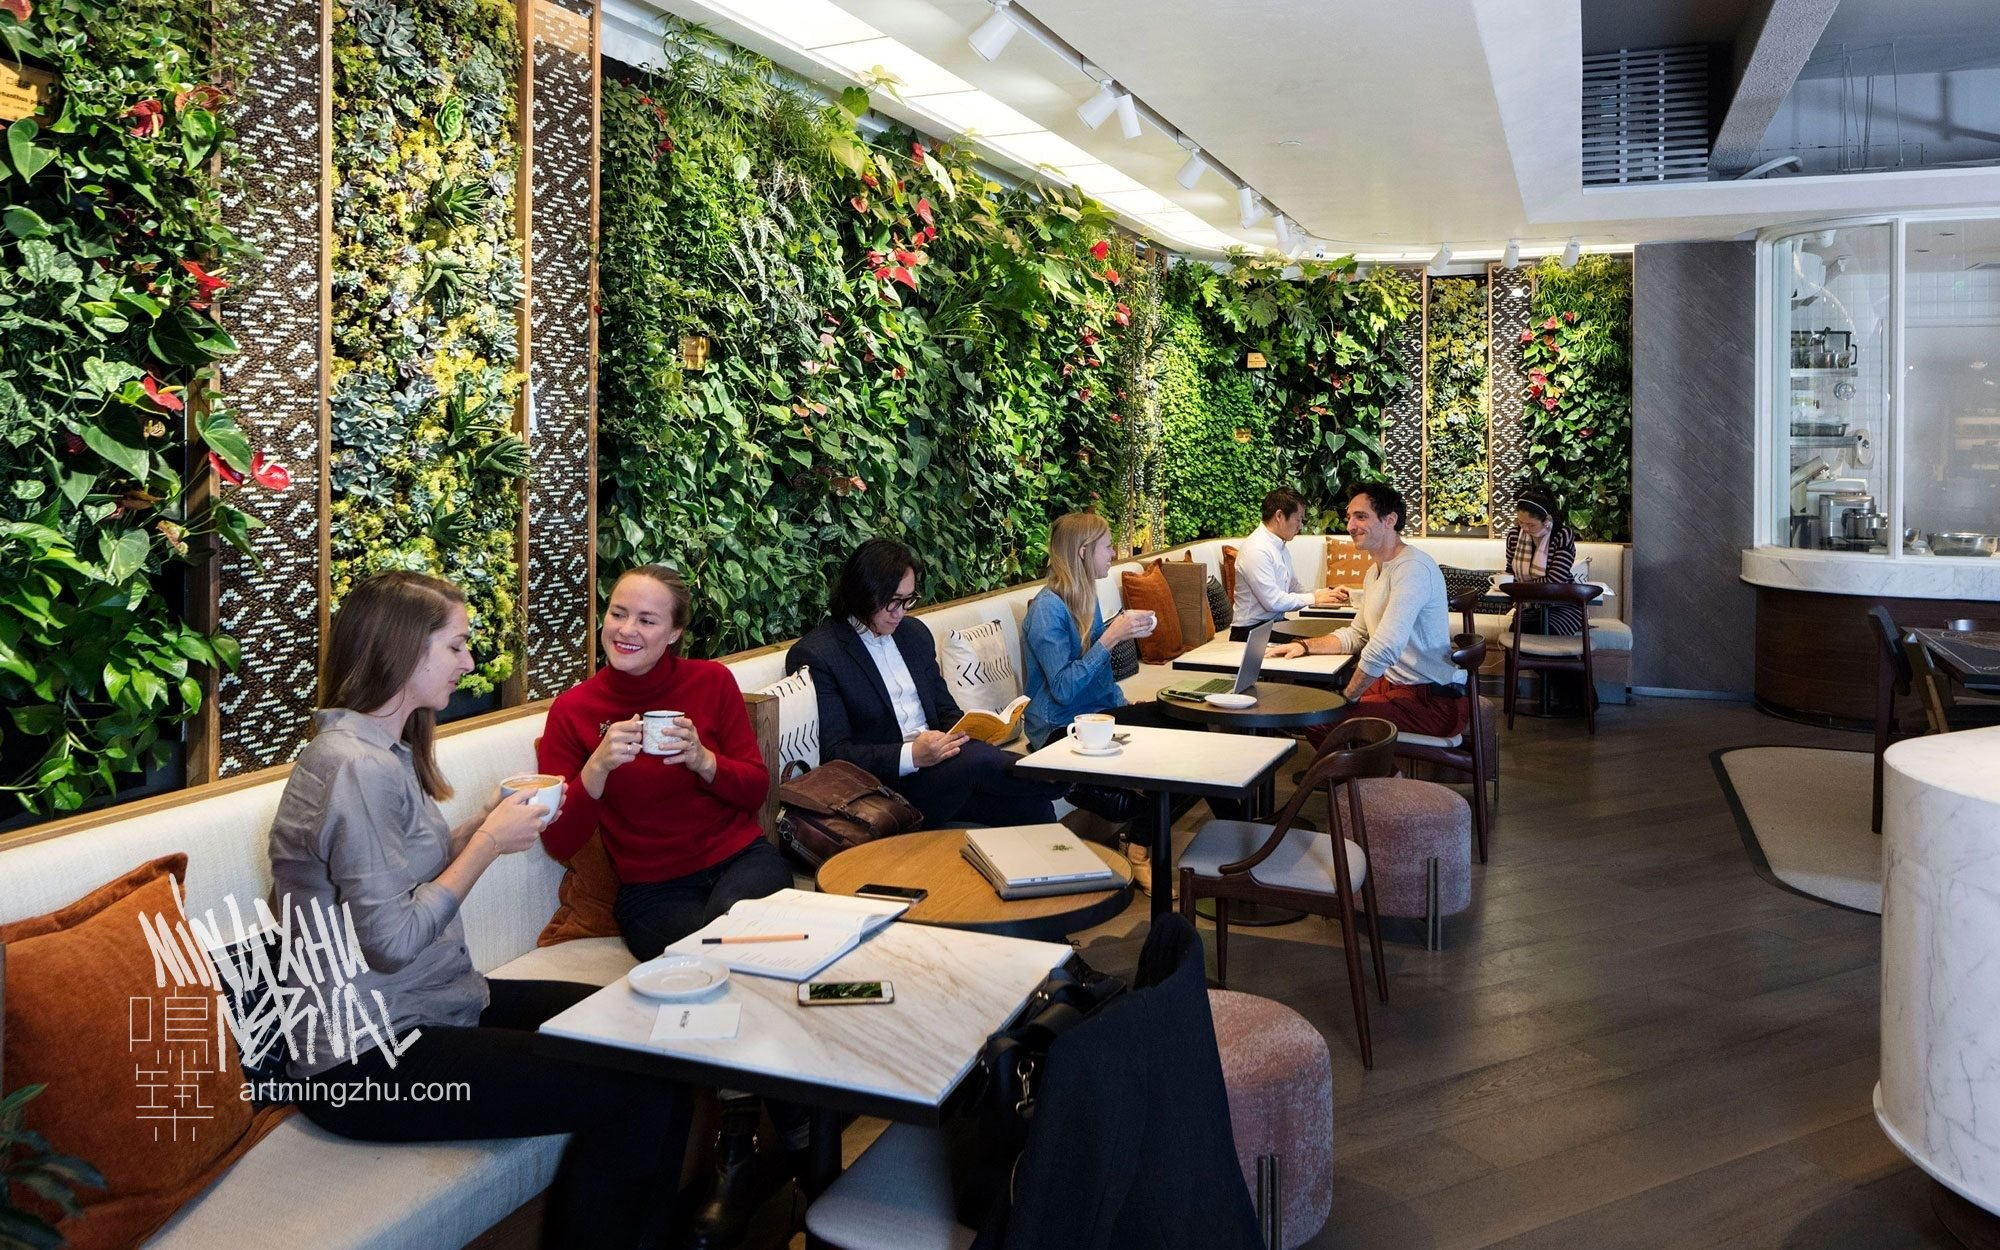 Mingzhu Nerval vertical living wall experts created a vertical living green wall for Peet's Coffee in Shanghai, 2017